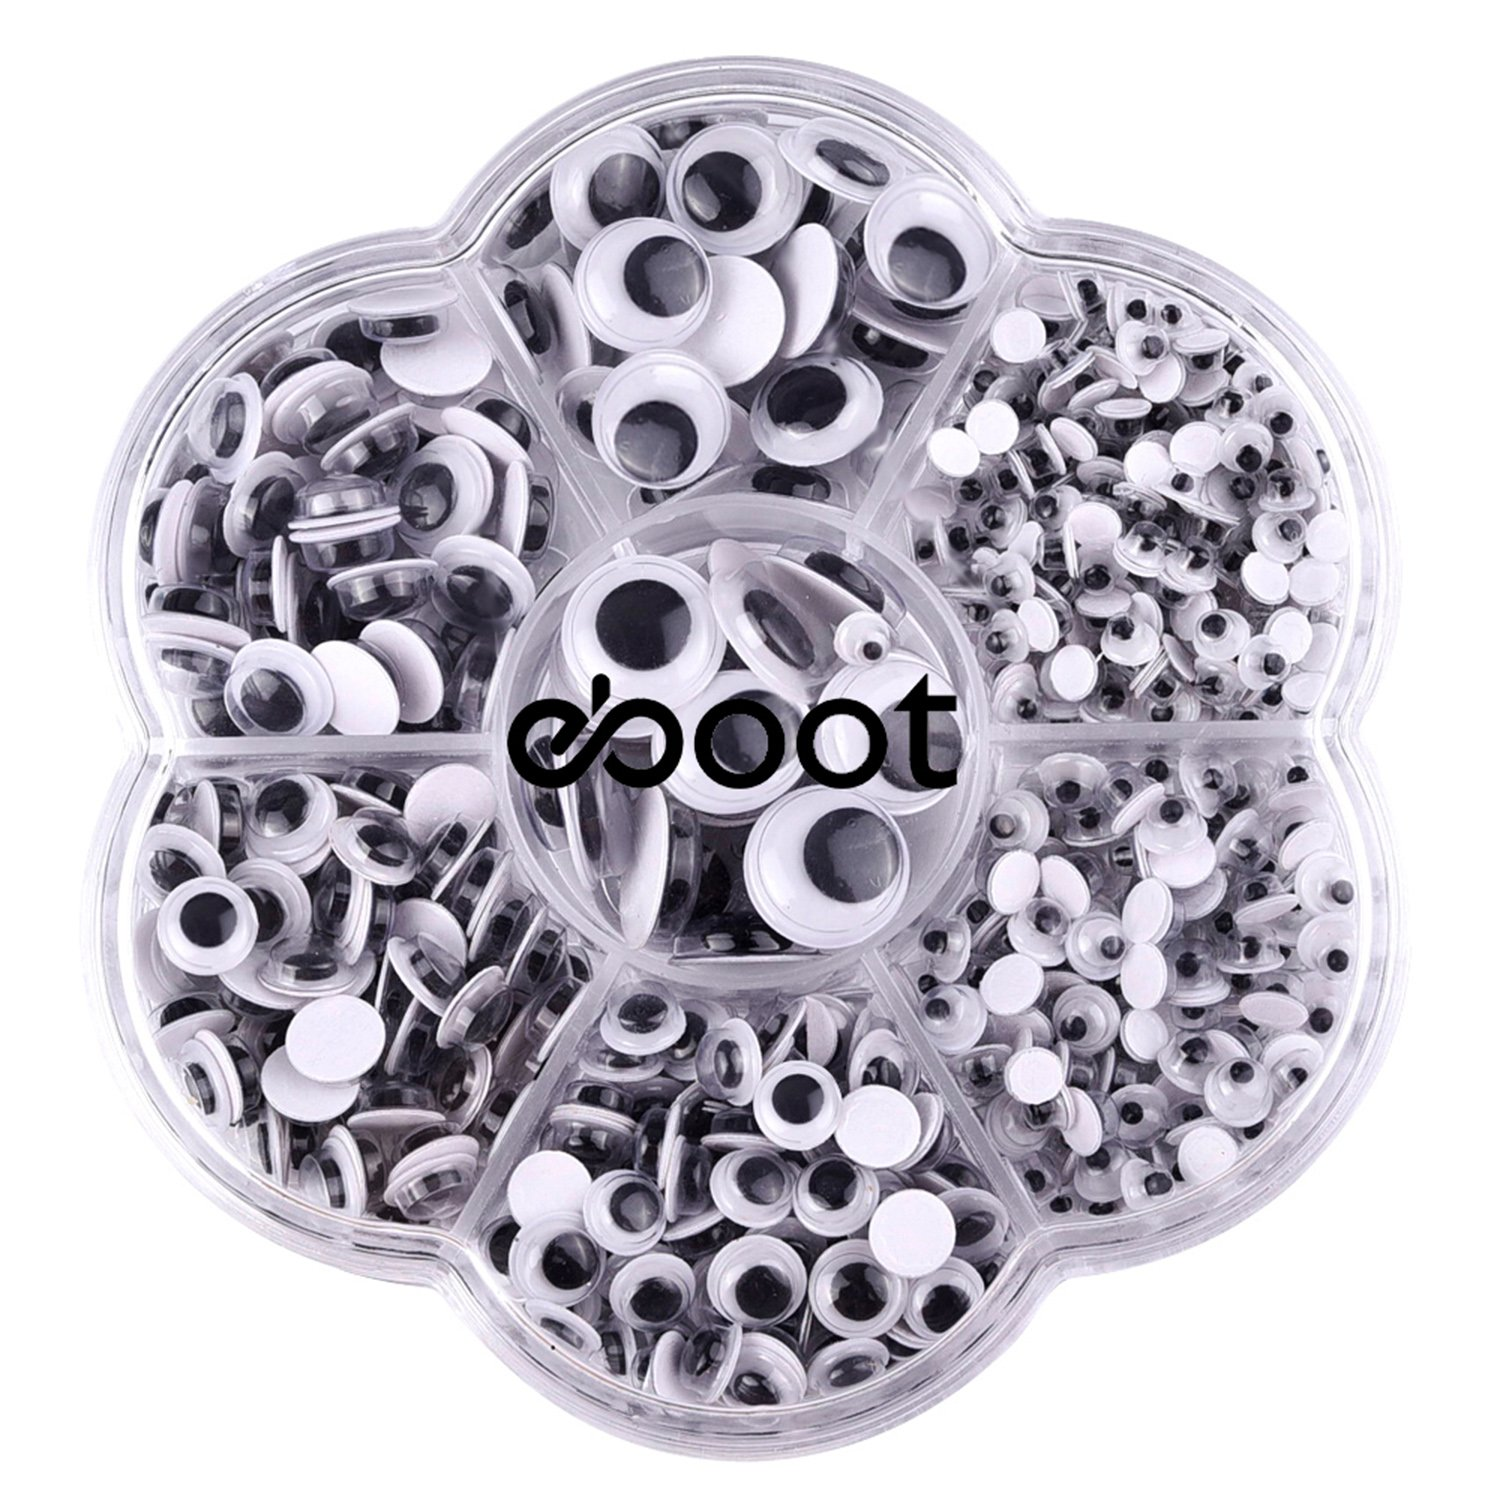 eBoot 700 Pieces Round Wiggle Googly Eyes with Self-adhesive DIY Scrapbooking Crafts Toy Accessories, Assorted Sizes 4336856363